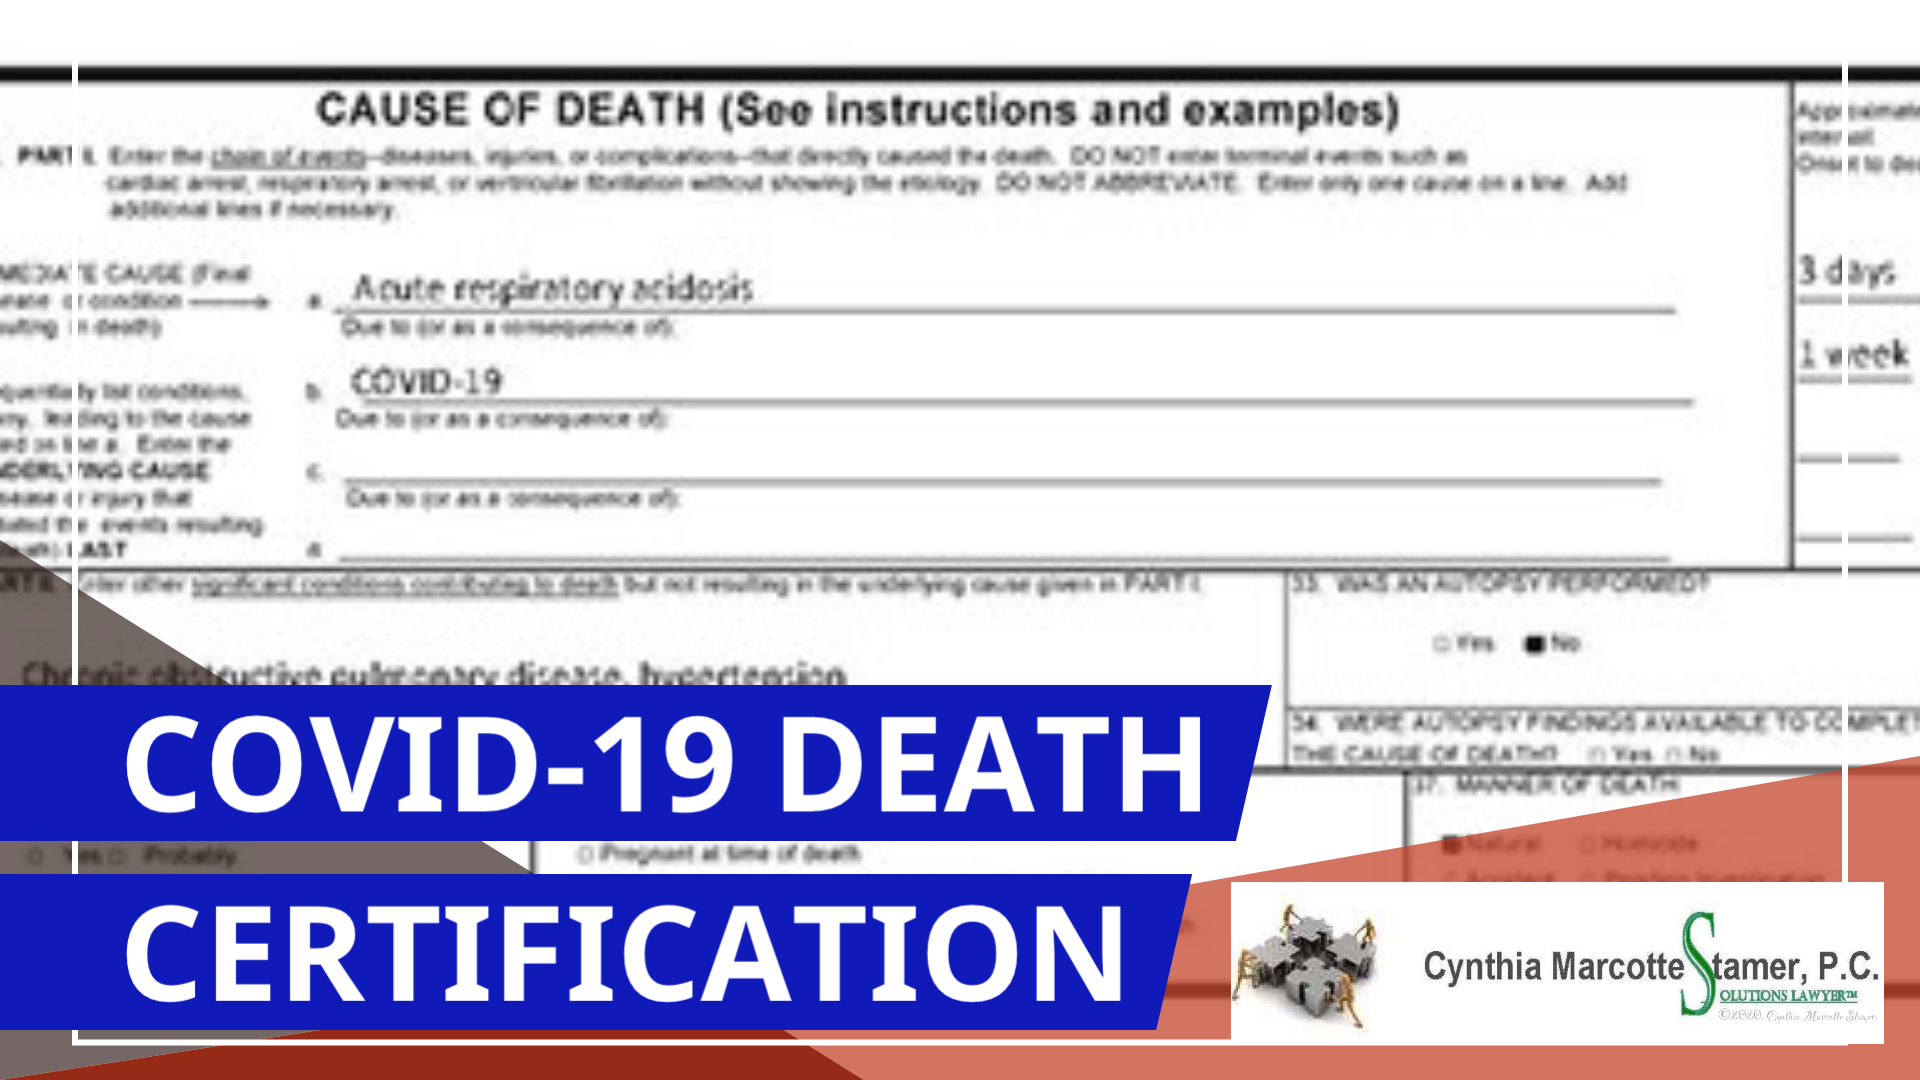 CME Credit Offered For Providers Completing Online Replay Of 4/16 CDC Training On Certifying  COVID-19 Deaths